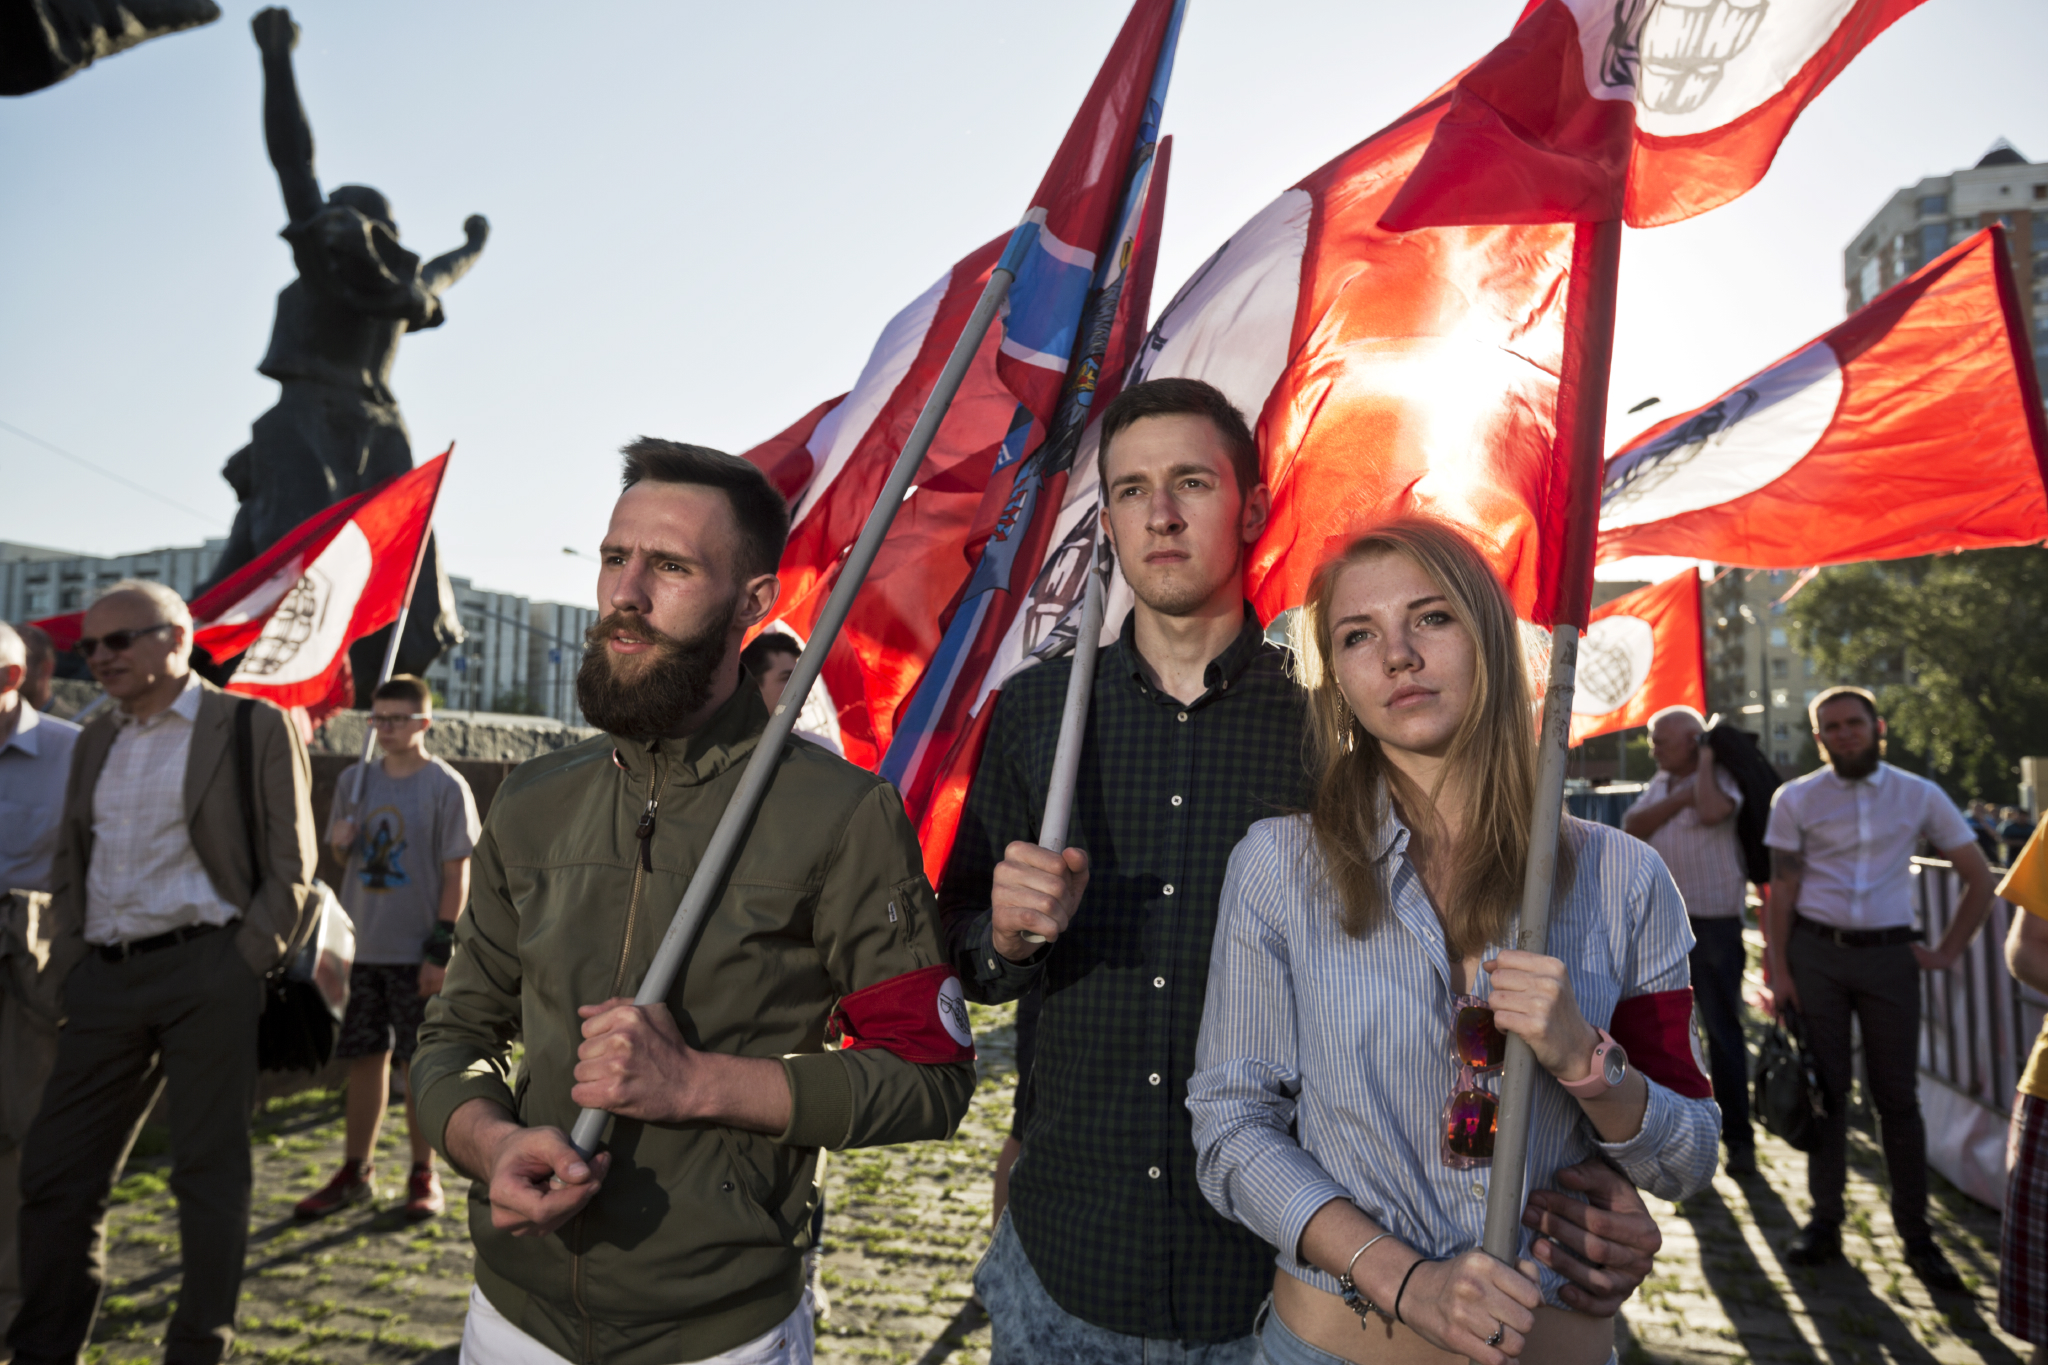 Kostya , 21, and his girlfriend Anastasiya, 20, supporters of the Other Russia, an opposition party, rally in Moscow displaying flags and armbands with their symbol, a grenade. The Other Russia was formed by members of a banned ultranationalist political party in 2010, but it is not recognized by Putin's government.  Moscow, Russia